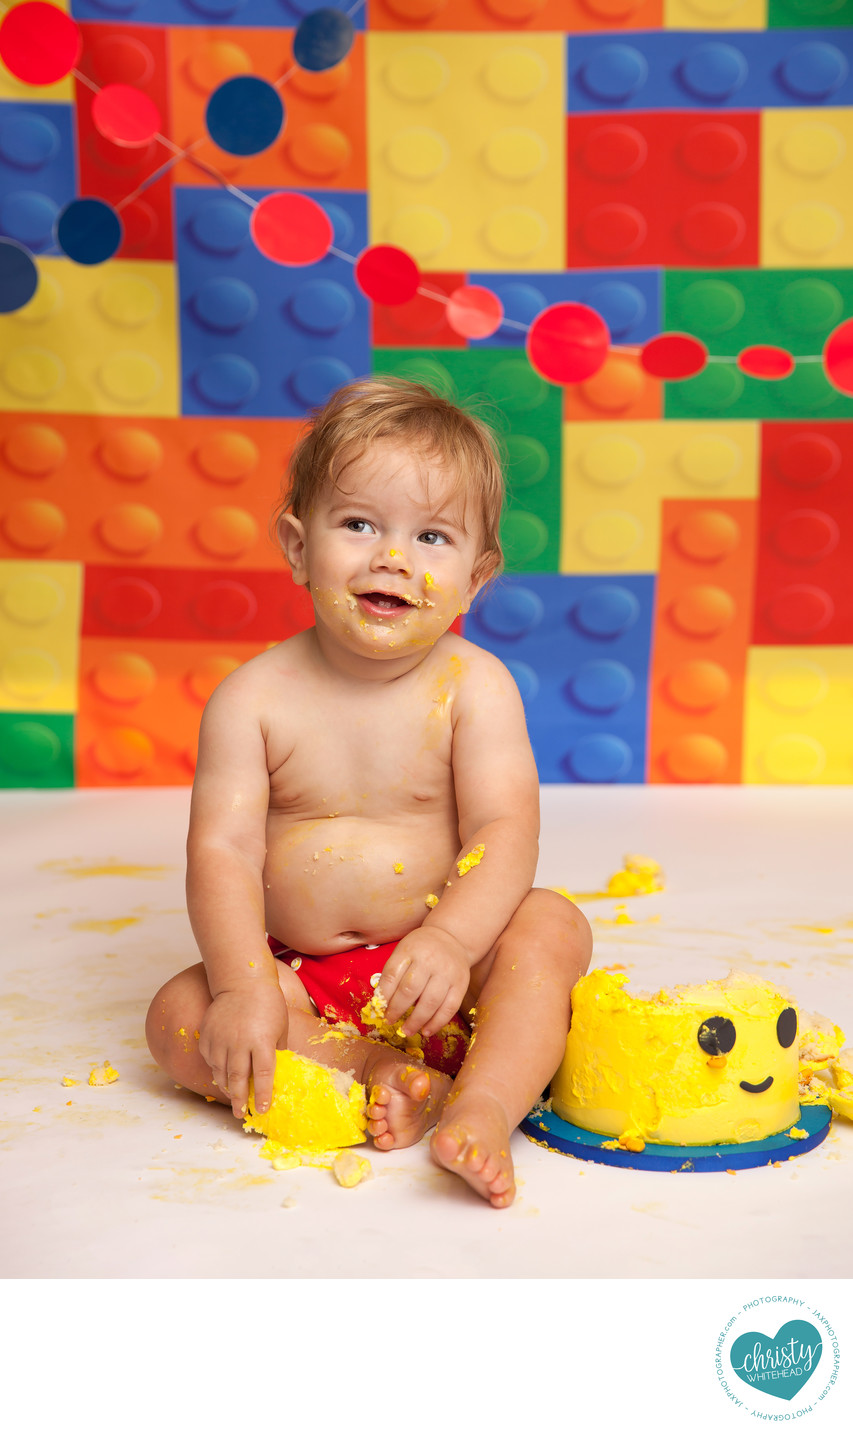 Baby Lego Cake Smash Photo Shoot JAX Photography